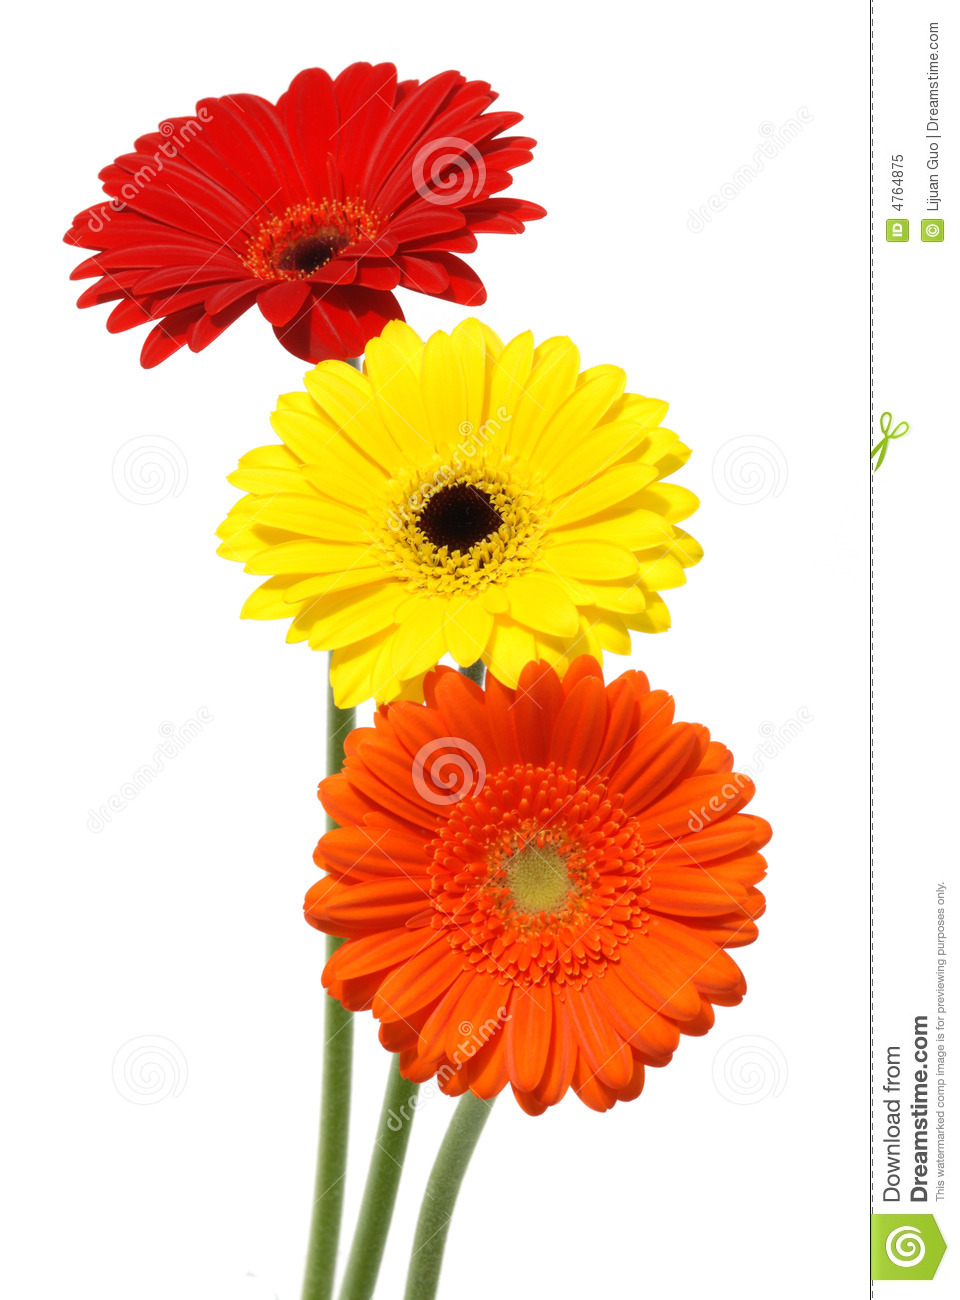 Gerber Daisy Flowers Isolated On White Royalty Free Stock Photo ...